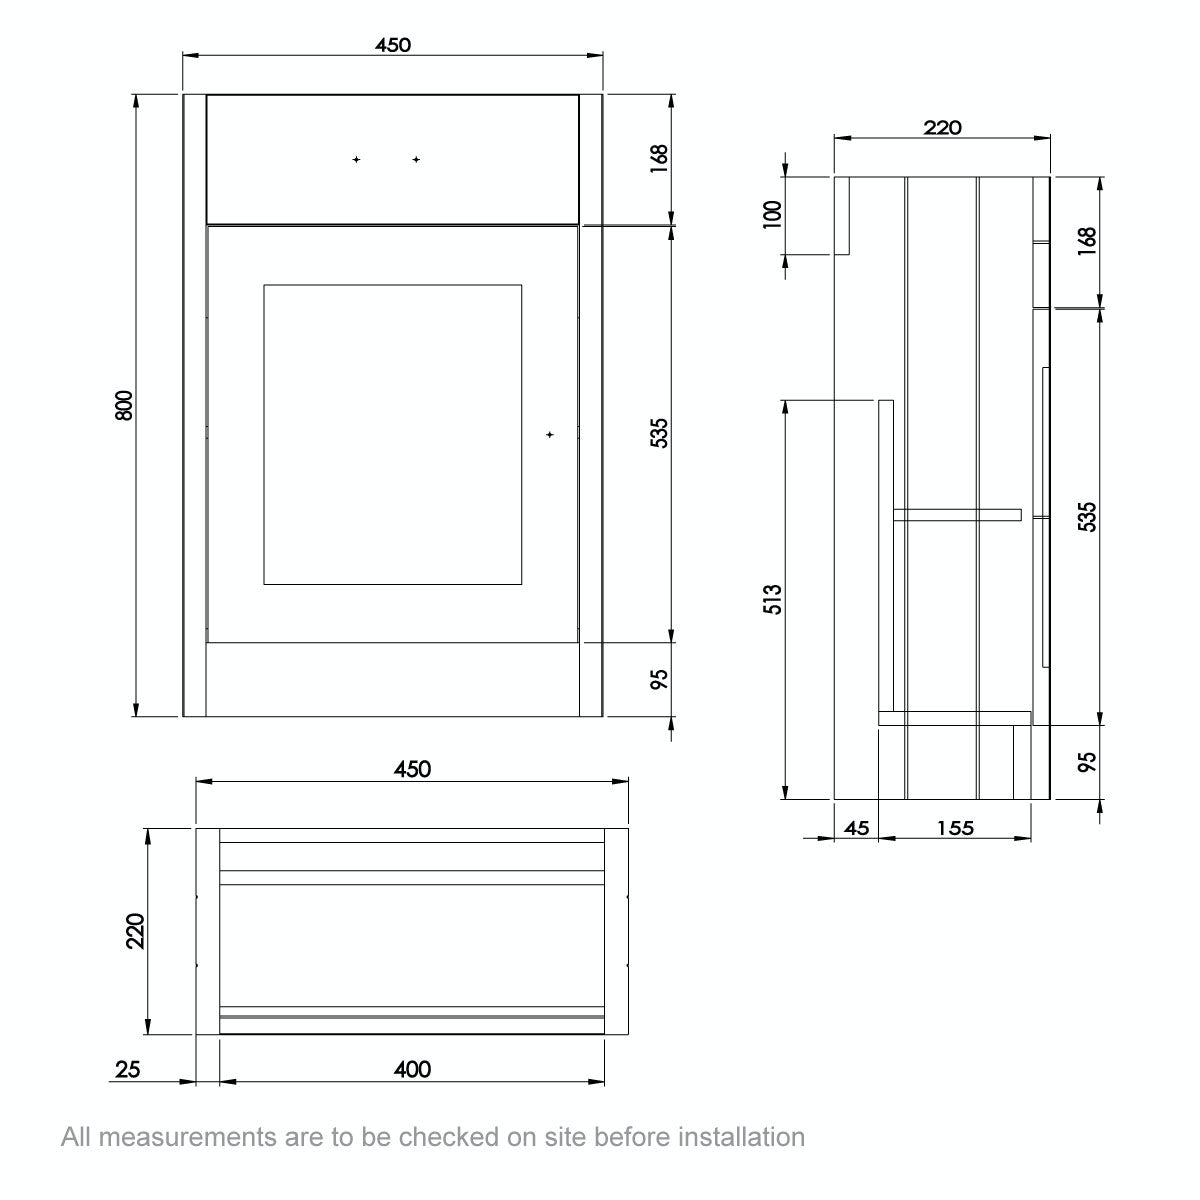 Dimensions for The Bath Co. Dulwich stone ivory cloakroom vanity with basin 450mm